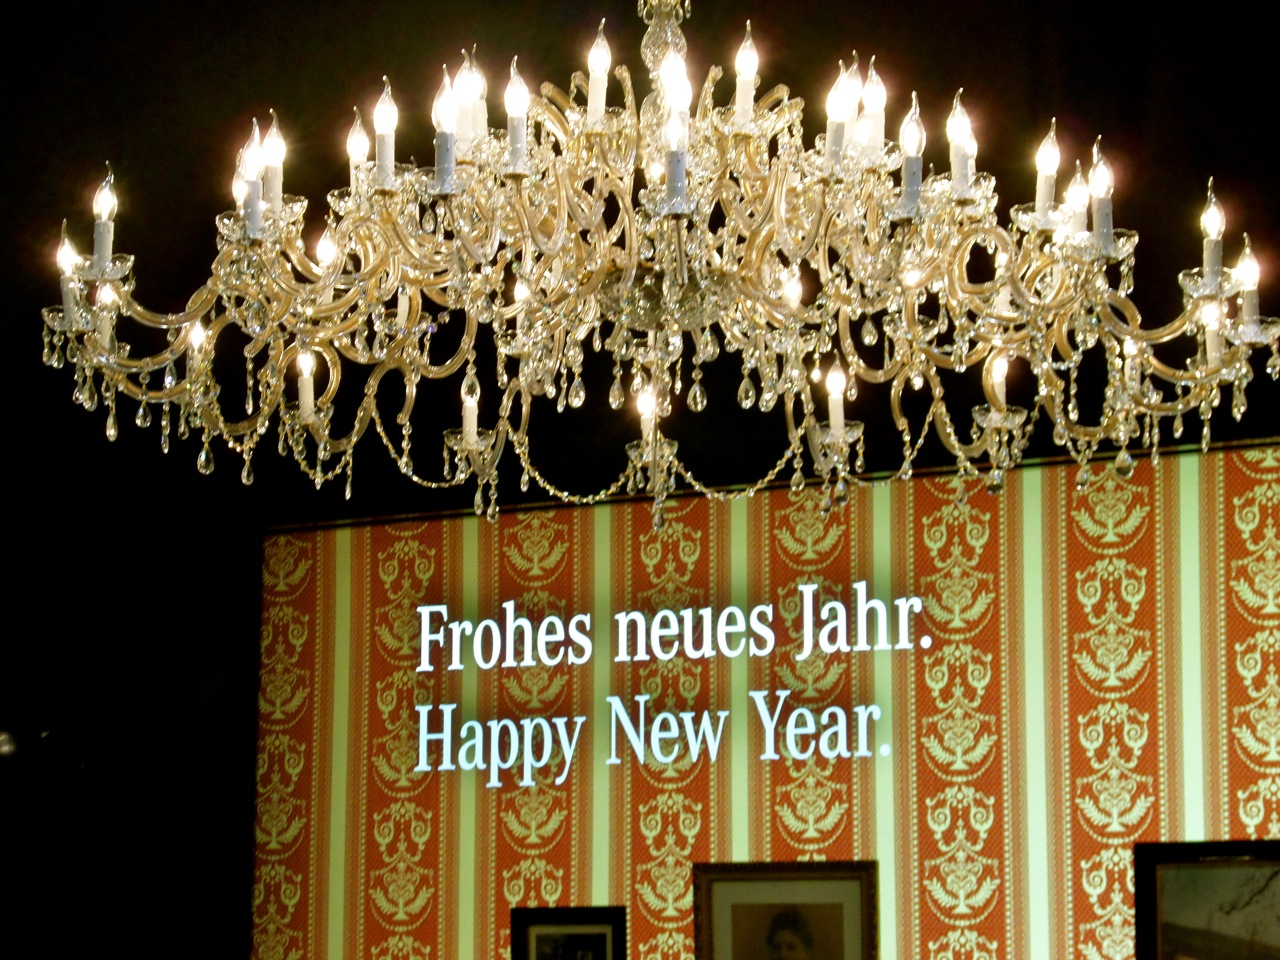 Happy New Year from Munich!